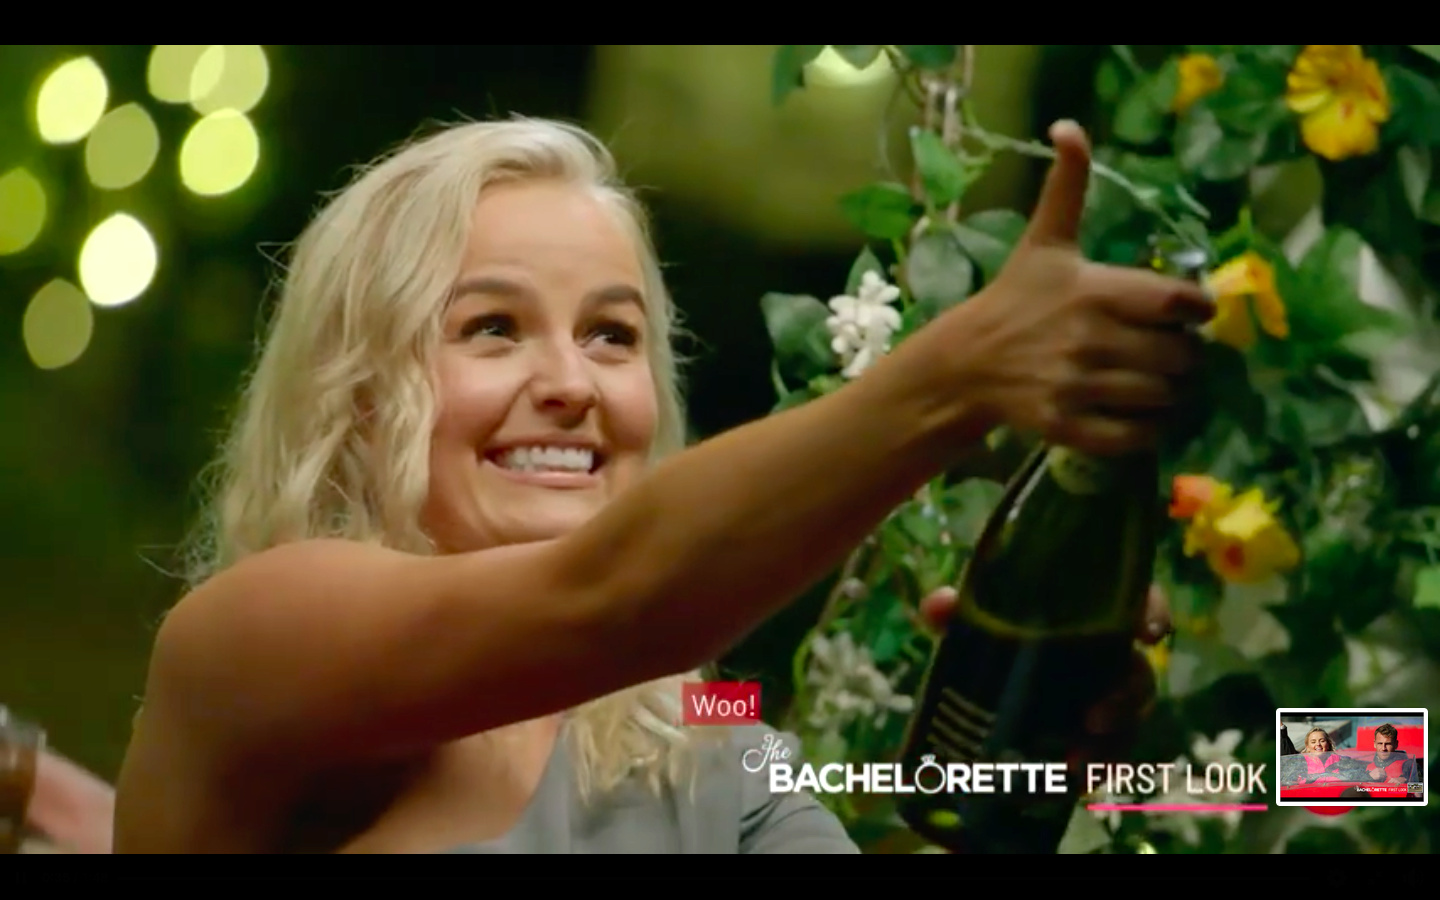 Bachelorette Australia - Season 6 - Elly and Becky Miles - Screencaps - Discussion - *Sleuthing Spoilers*  - Page 5 Screen68